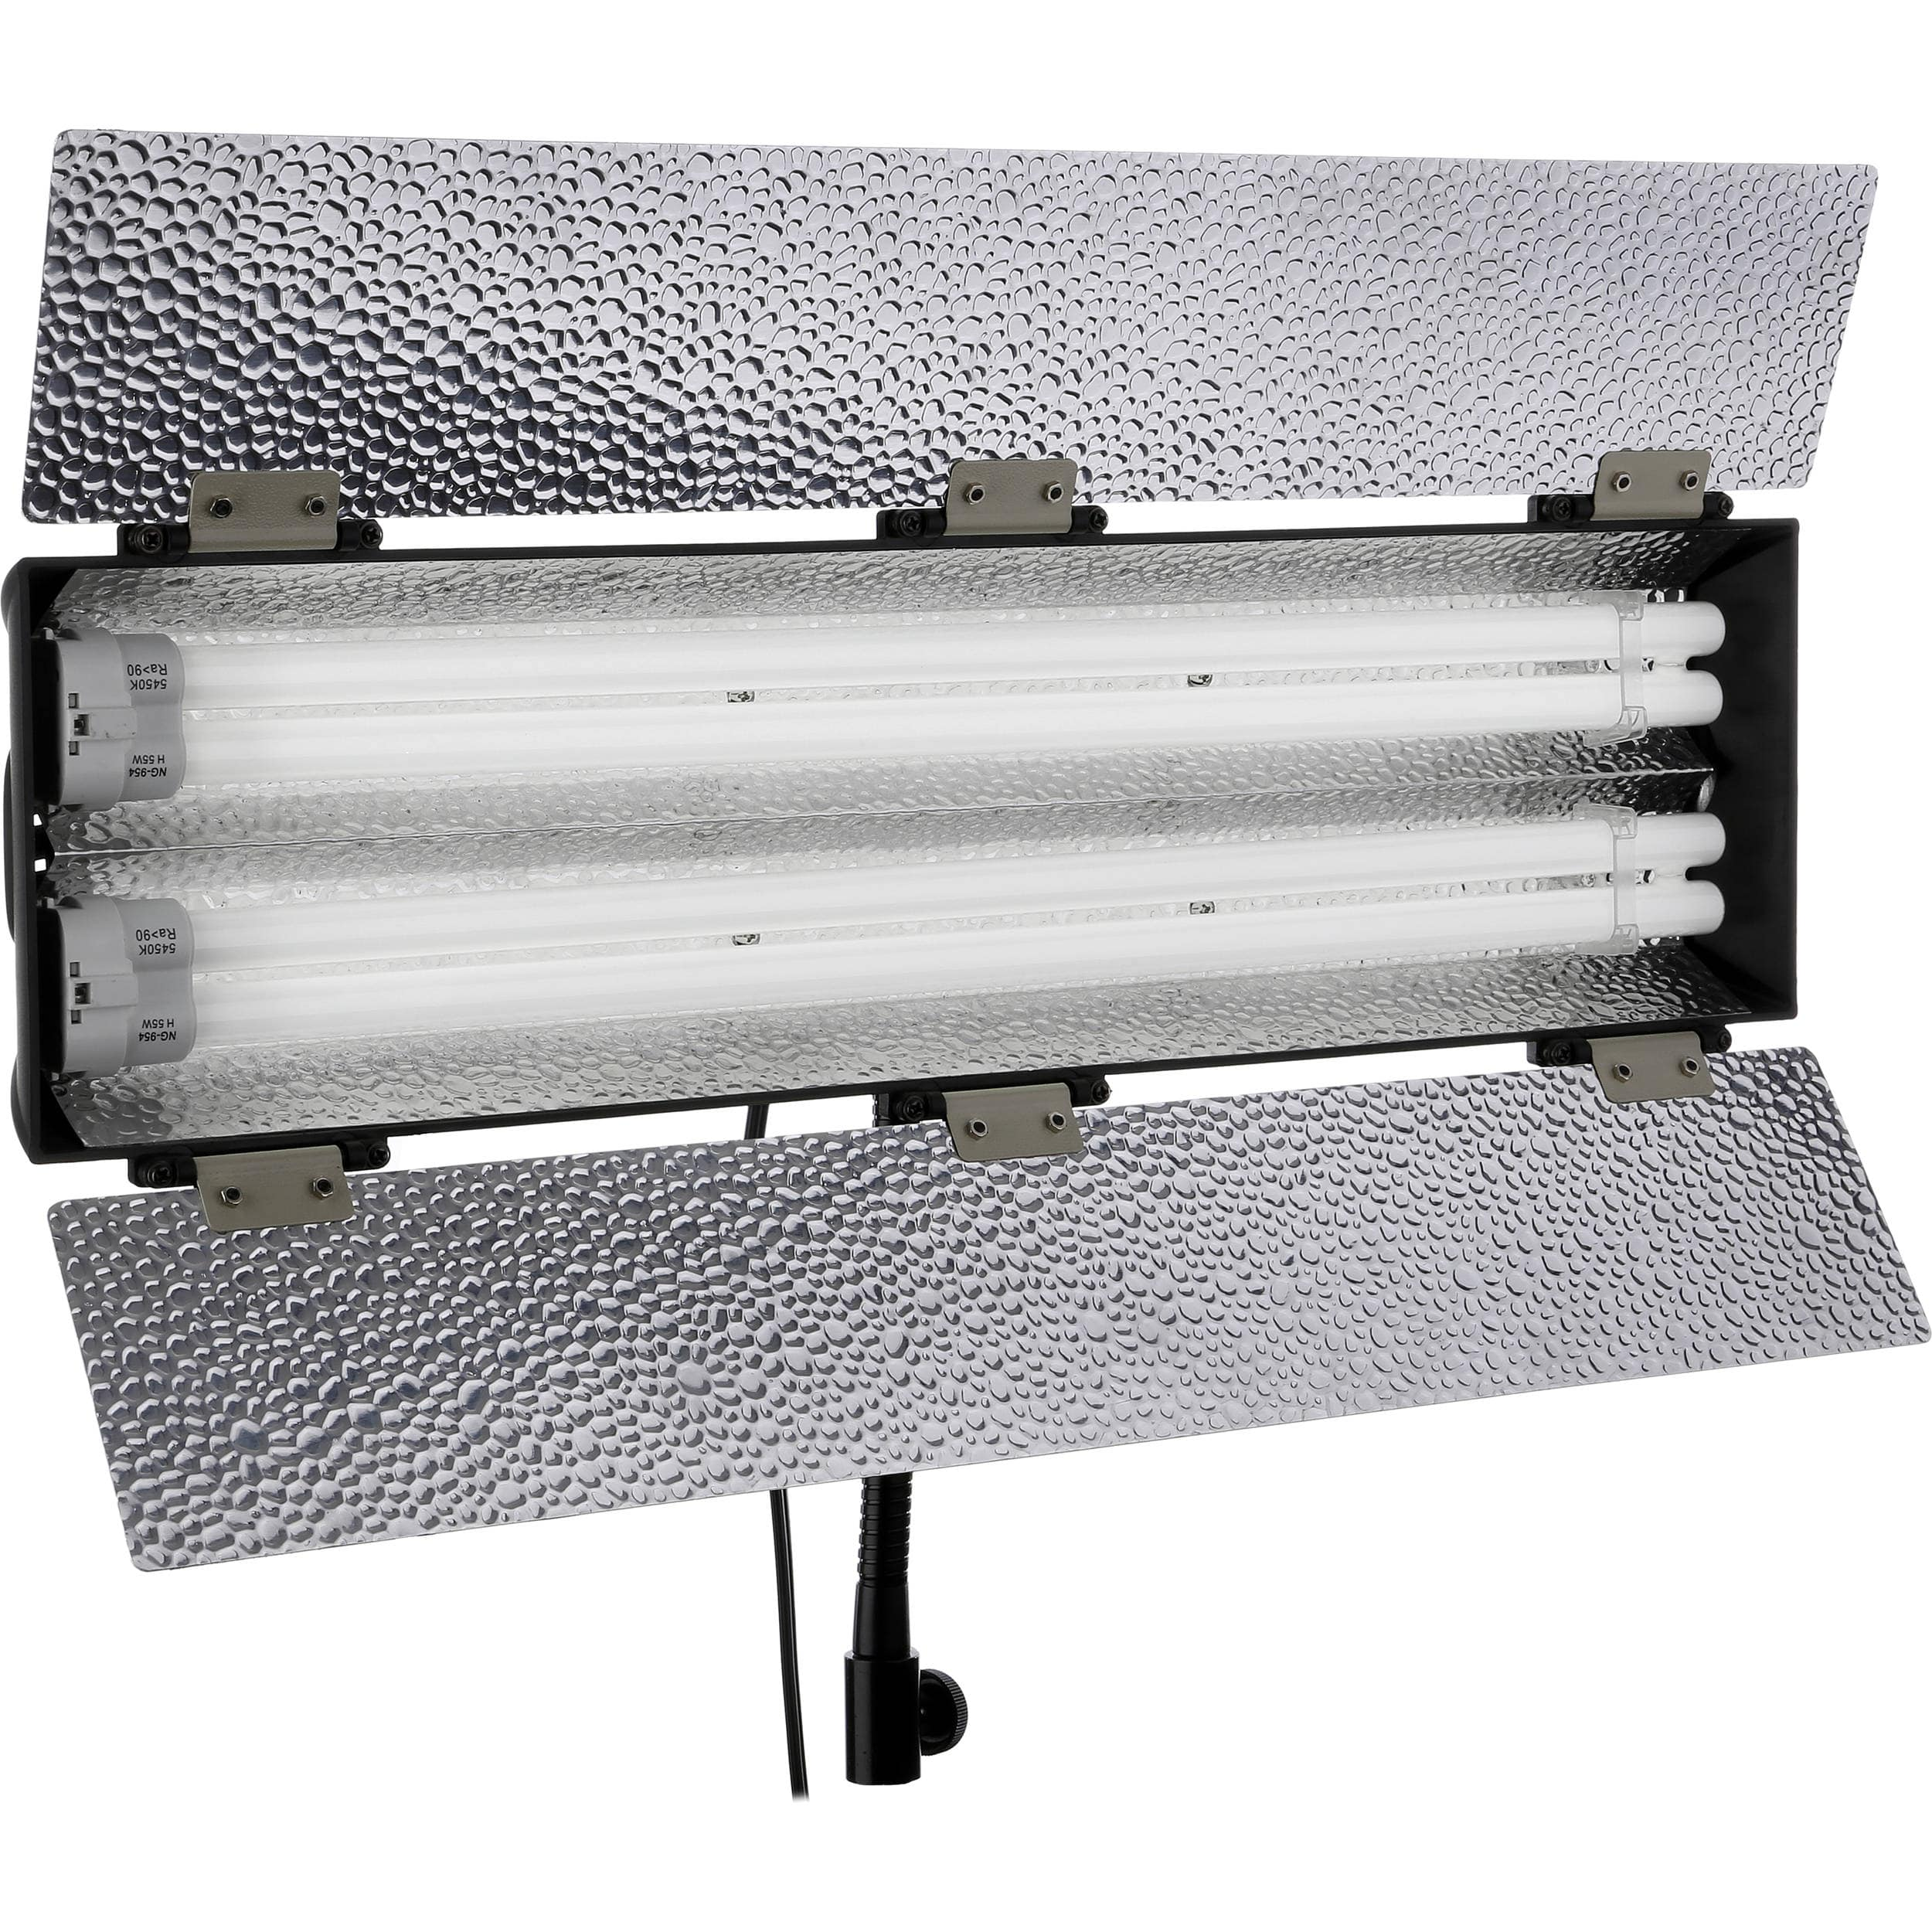 Angler  Steady Cool 2-Lamp Fluorescent Fixture $99.95 @ B&H Photo w/ Free Shipping